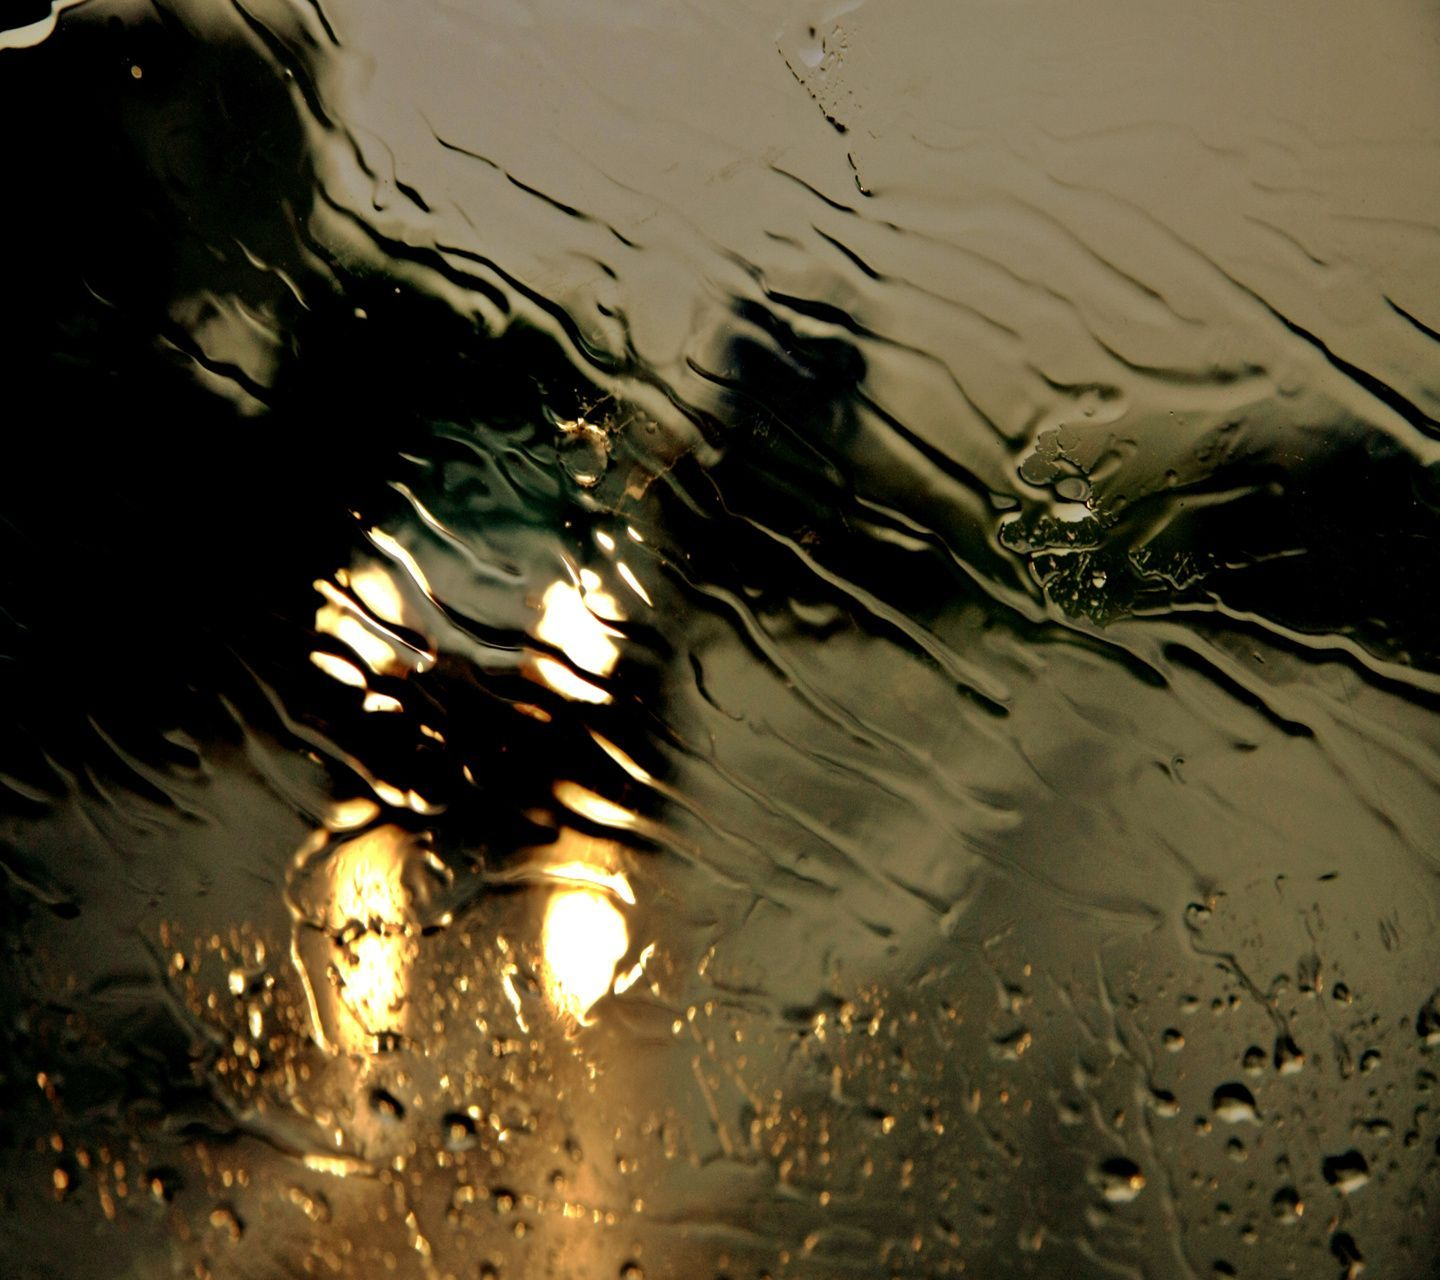 Rainy Day Wallpaper: Rainy Day Wallpapers For Mobile Phones